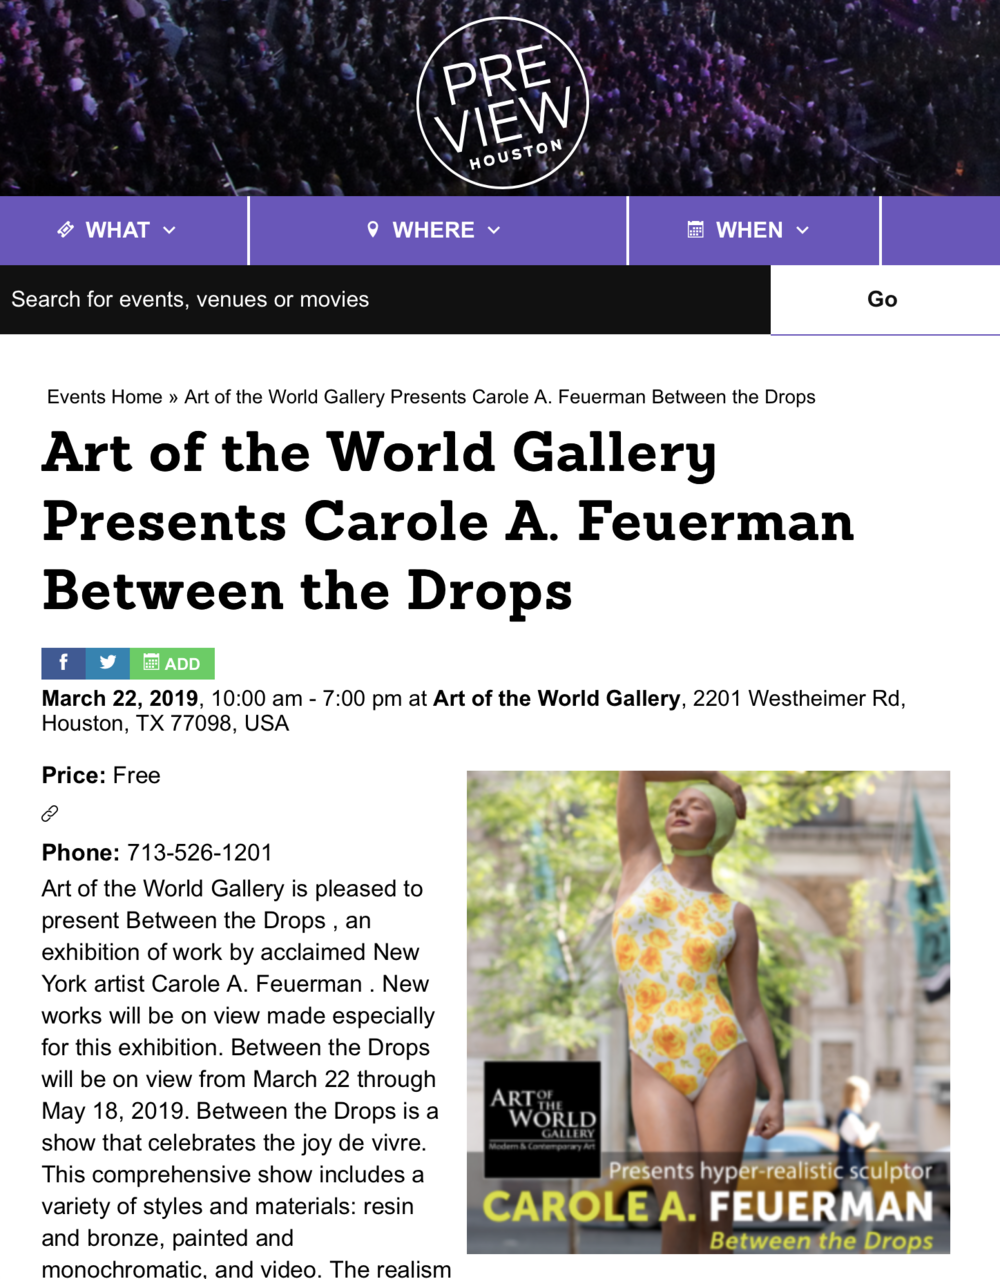 rt of the World Gallery Presents Carole A. Feuerman Between the Drops